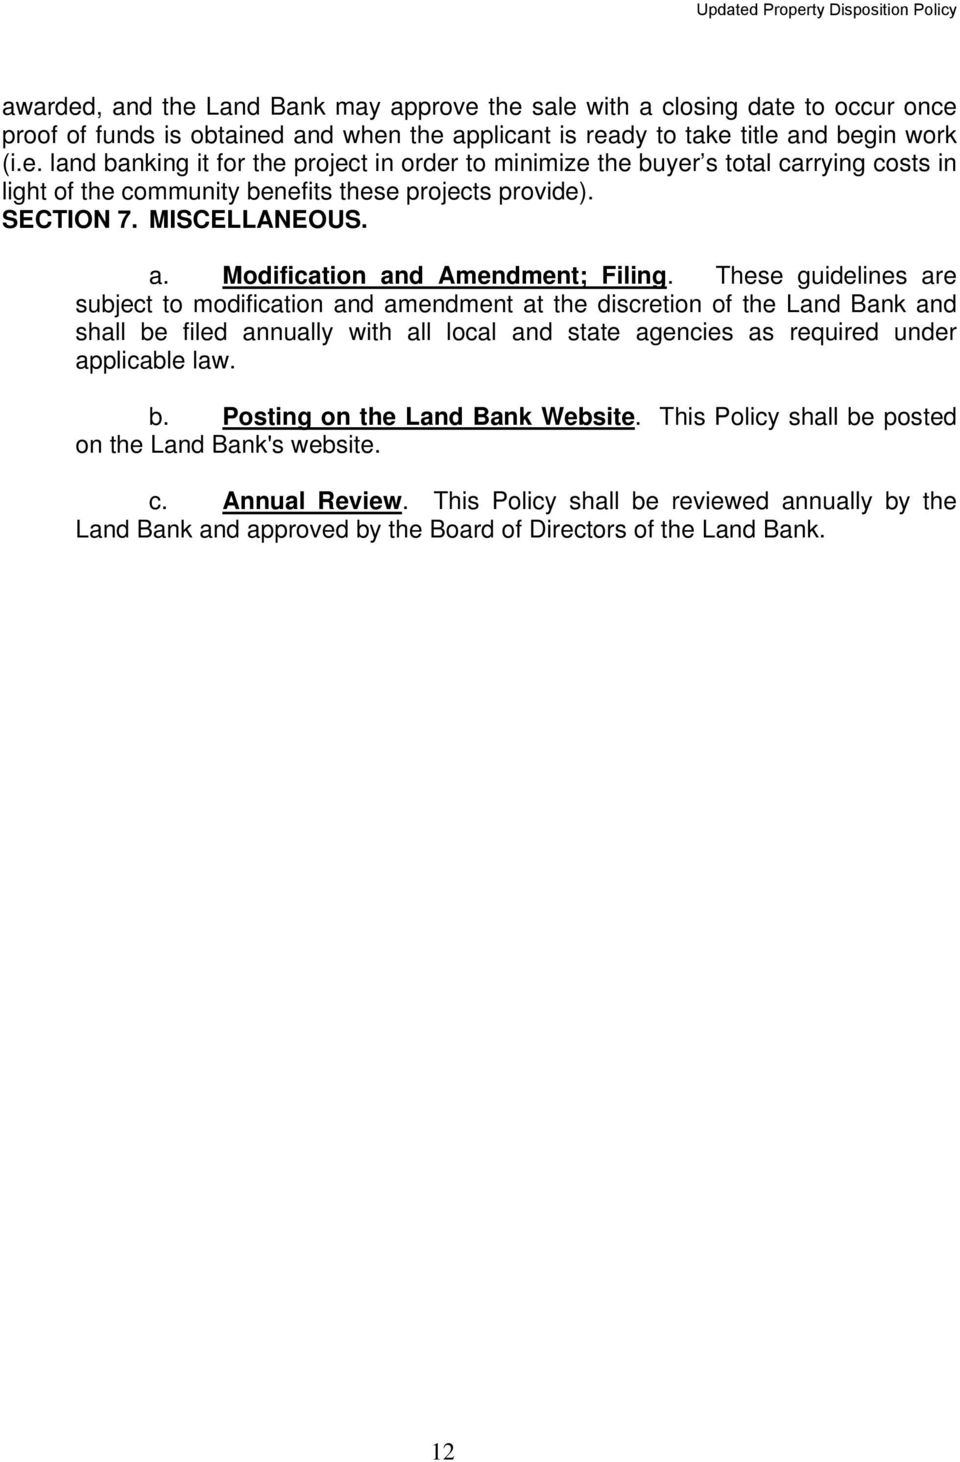 These guidelines are subject to modification and amendment at the discretion of the Land Bank and shall be filed annually with all local and state agencies as required under applicable law. b. Posting on the Land Bank Website.